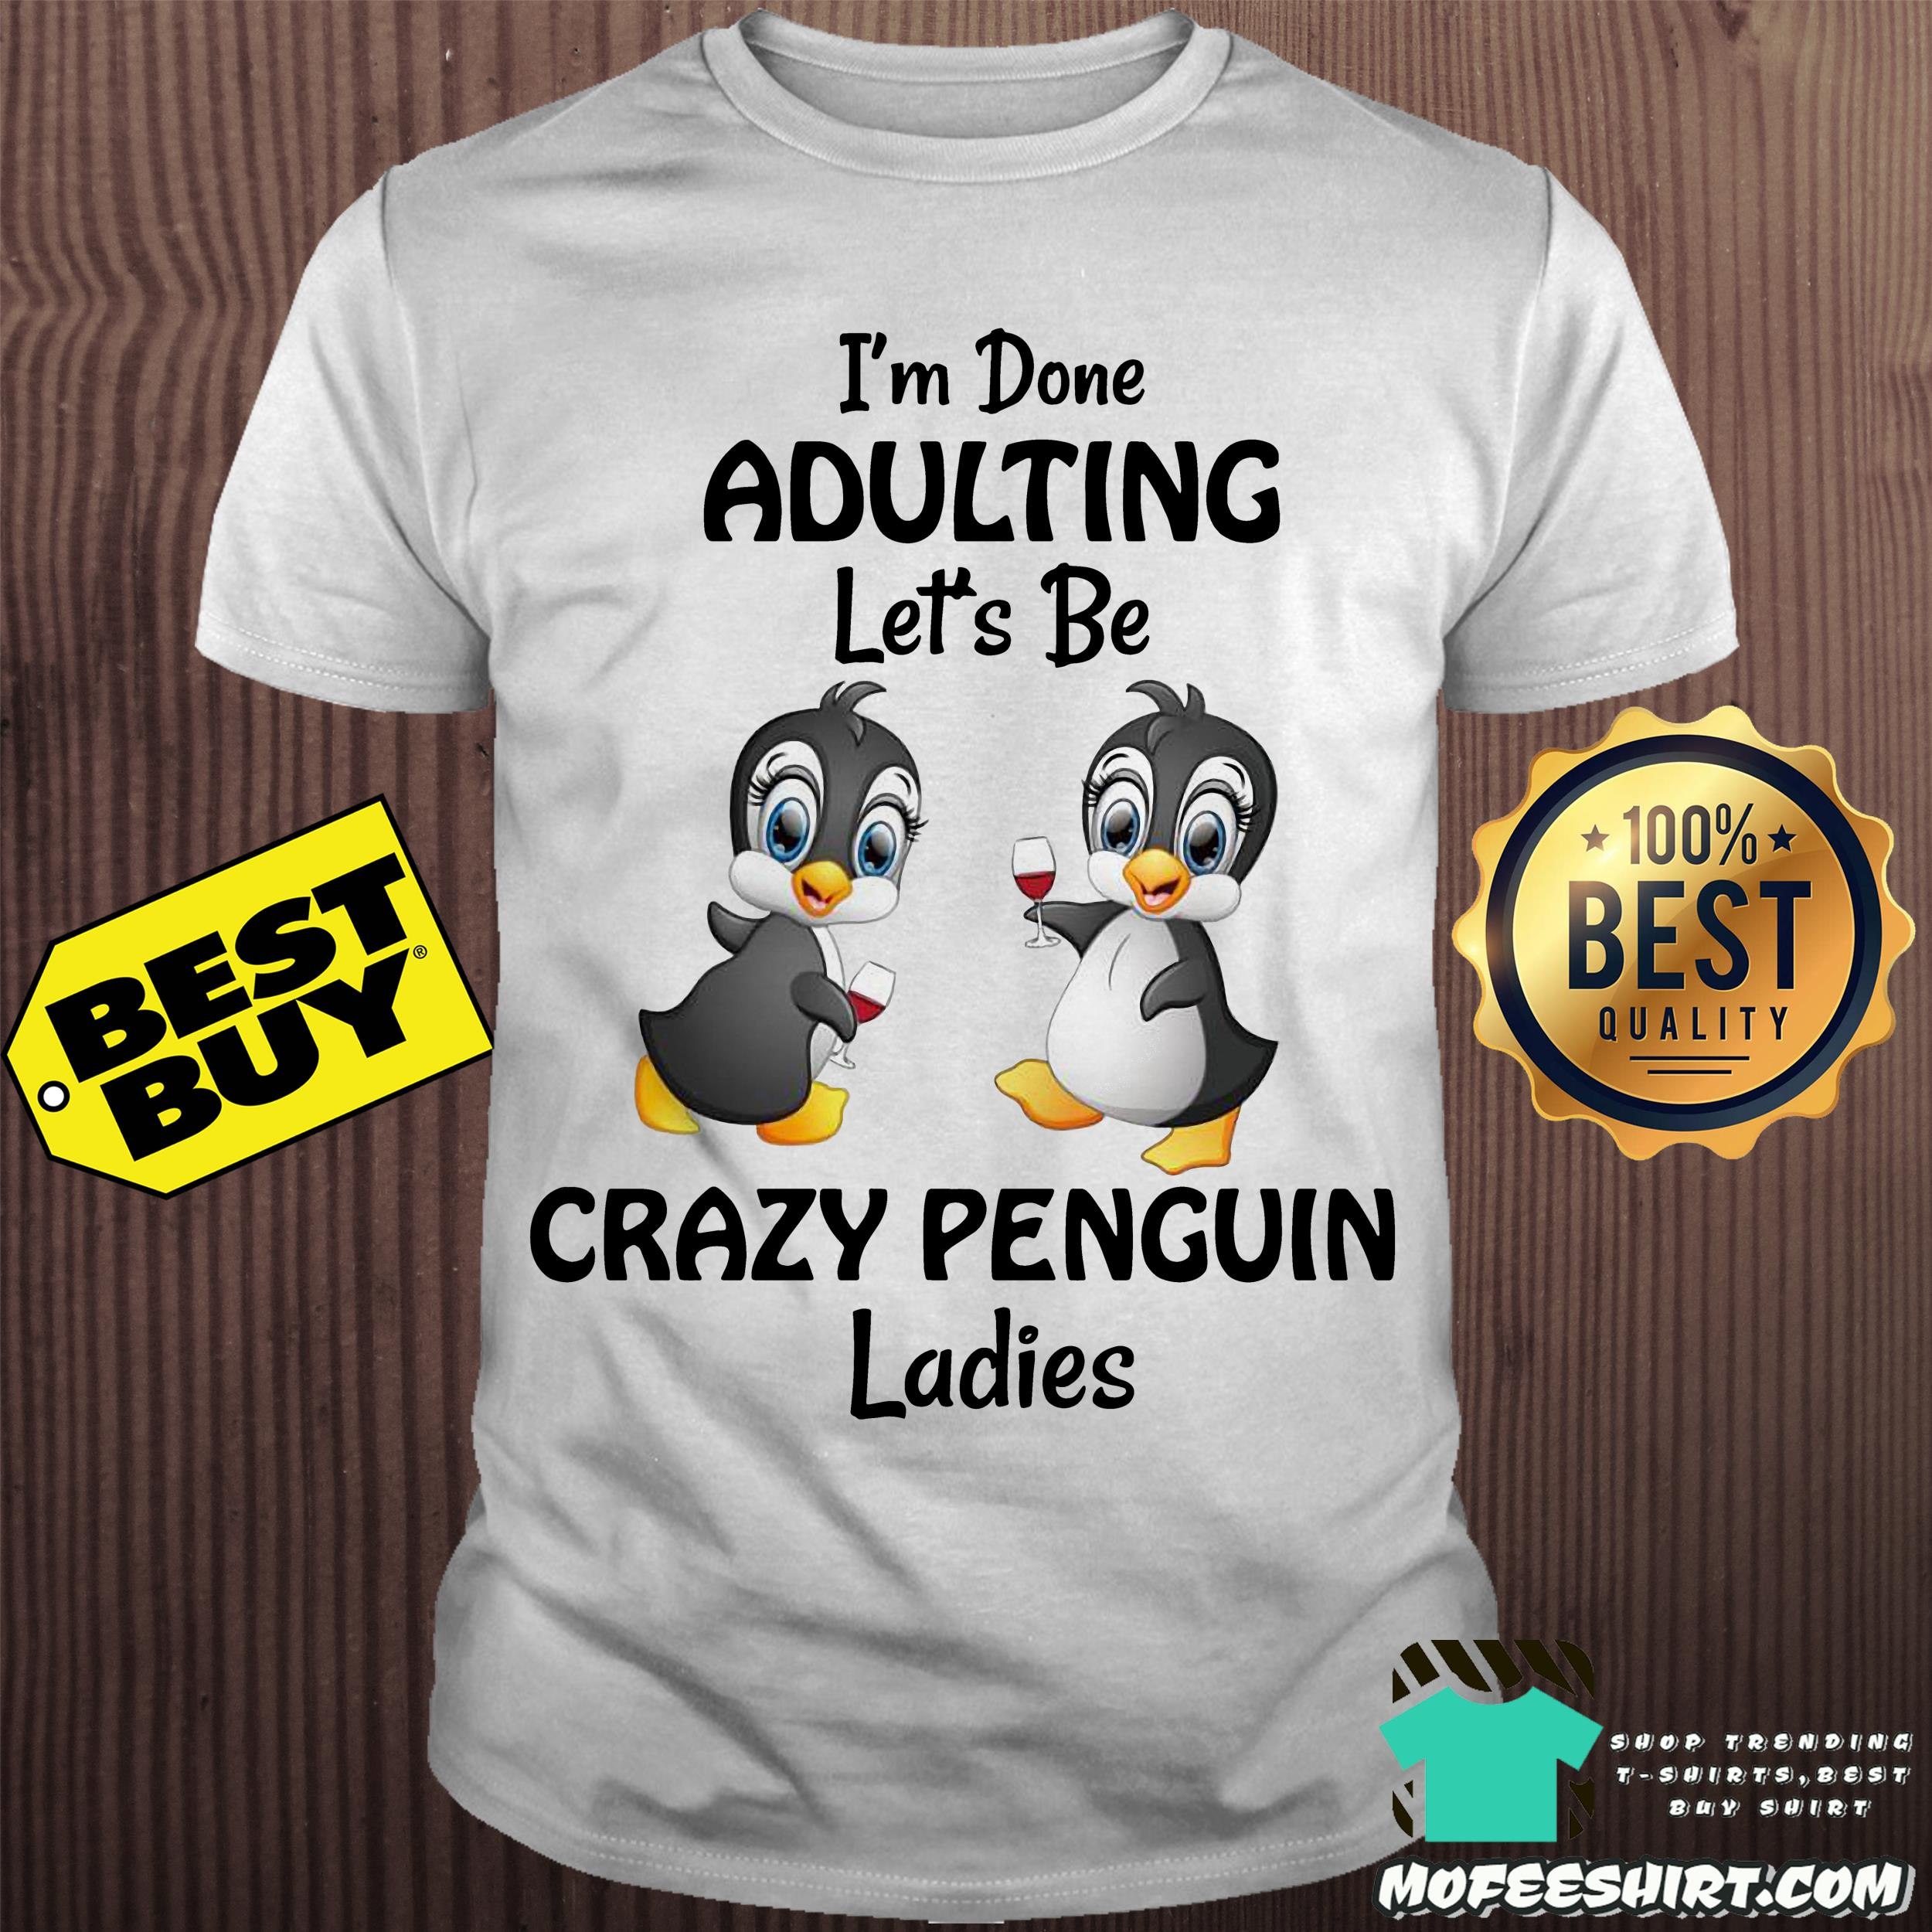 603fa6f51 Sale 20%] Official I'm done adulting Let's be crazy penguin ladies shirt